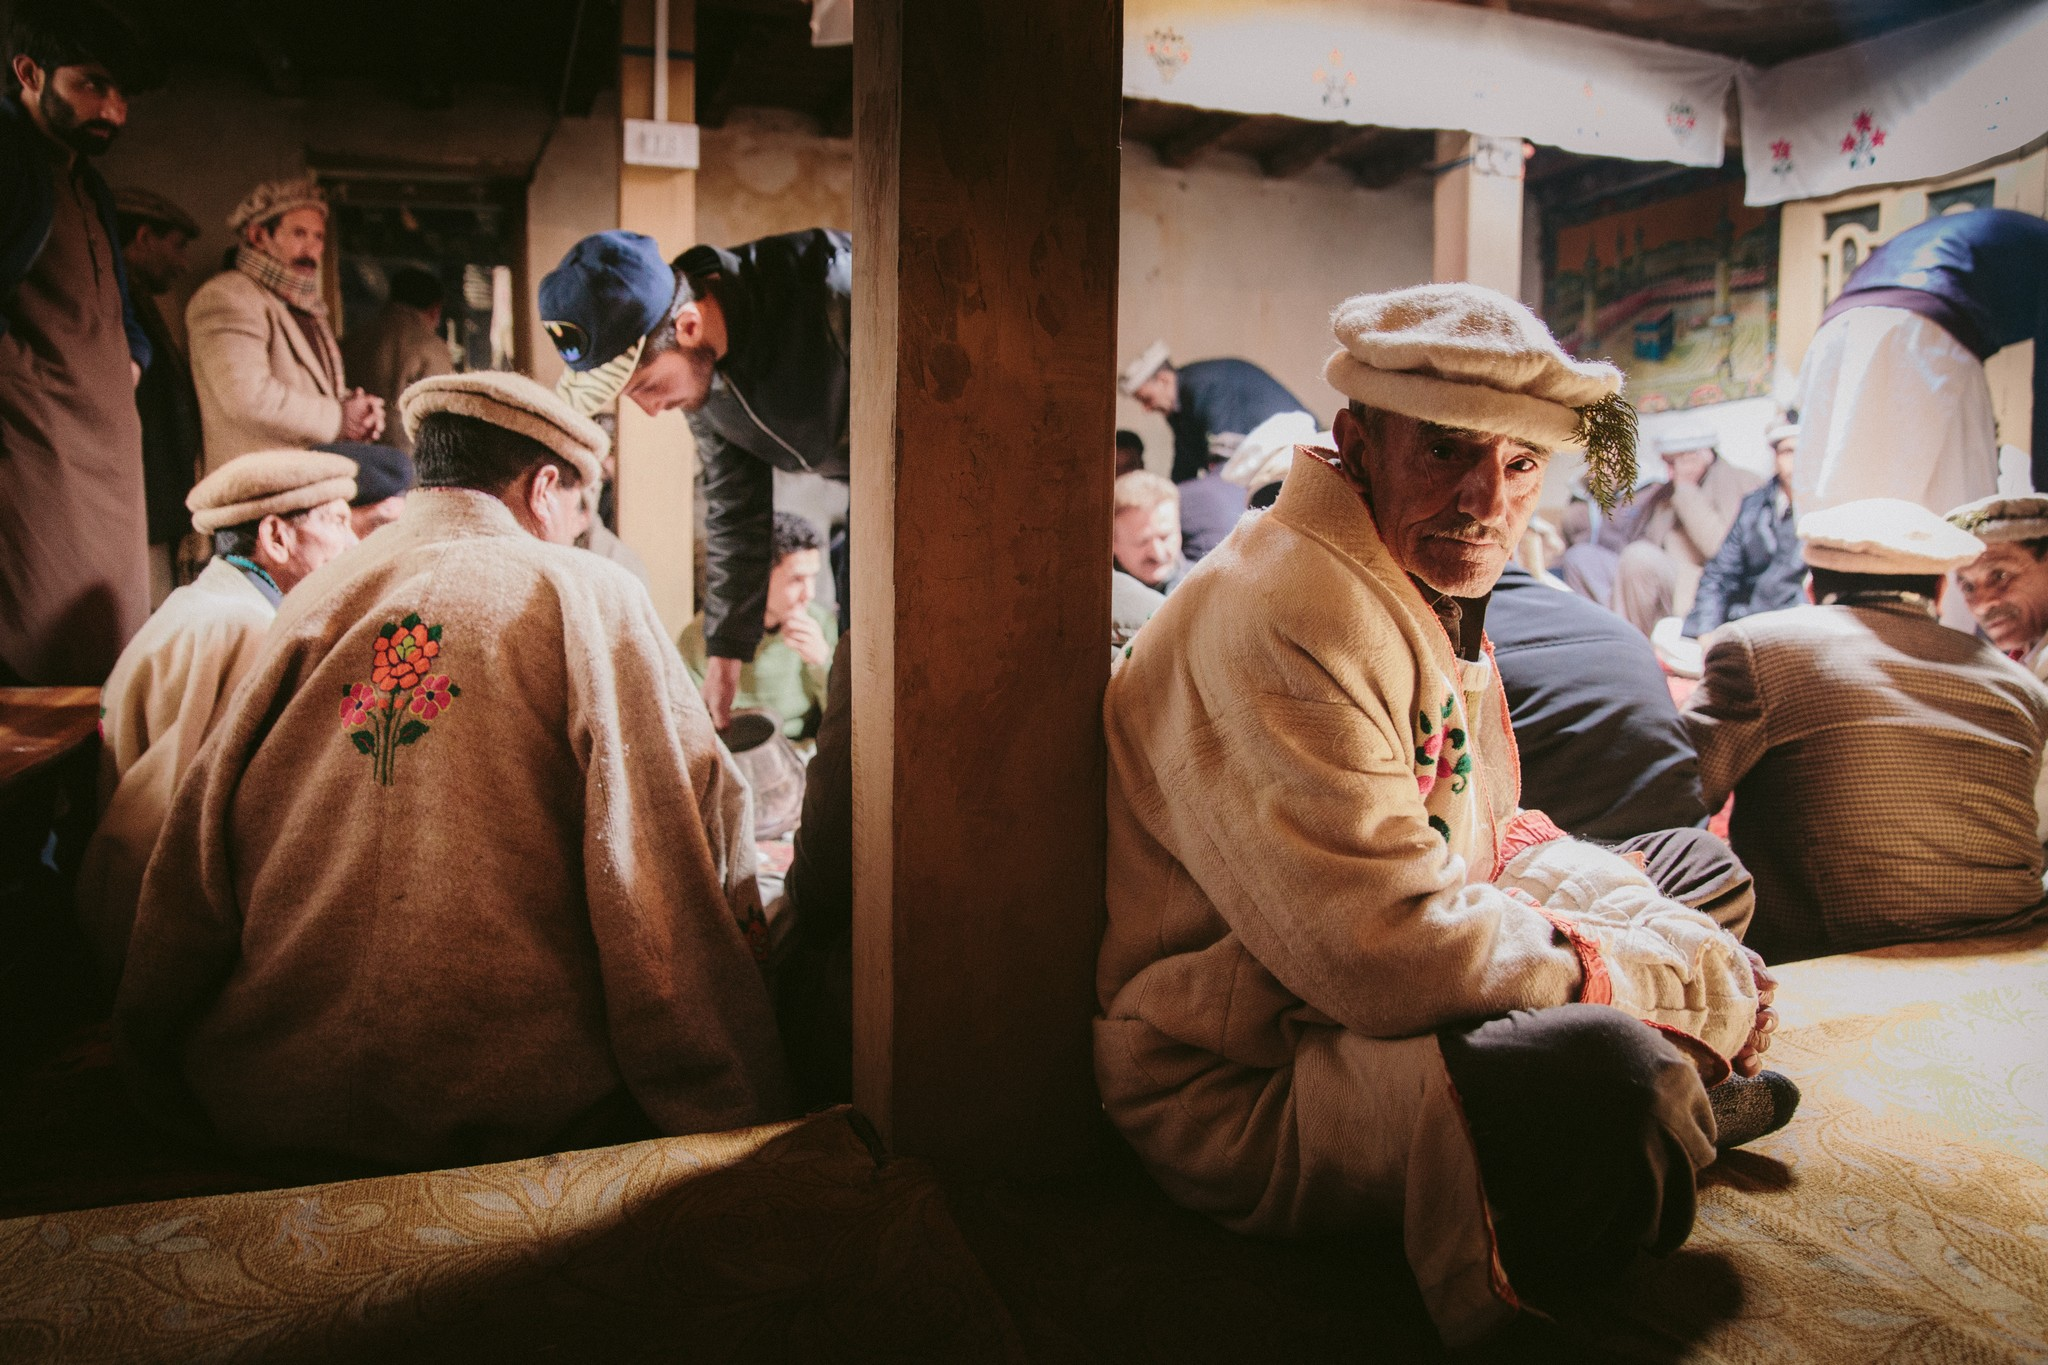 Reportage Photography: How to Take Gripping Reportage That Tells Stories